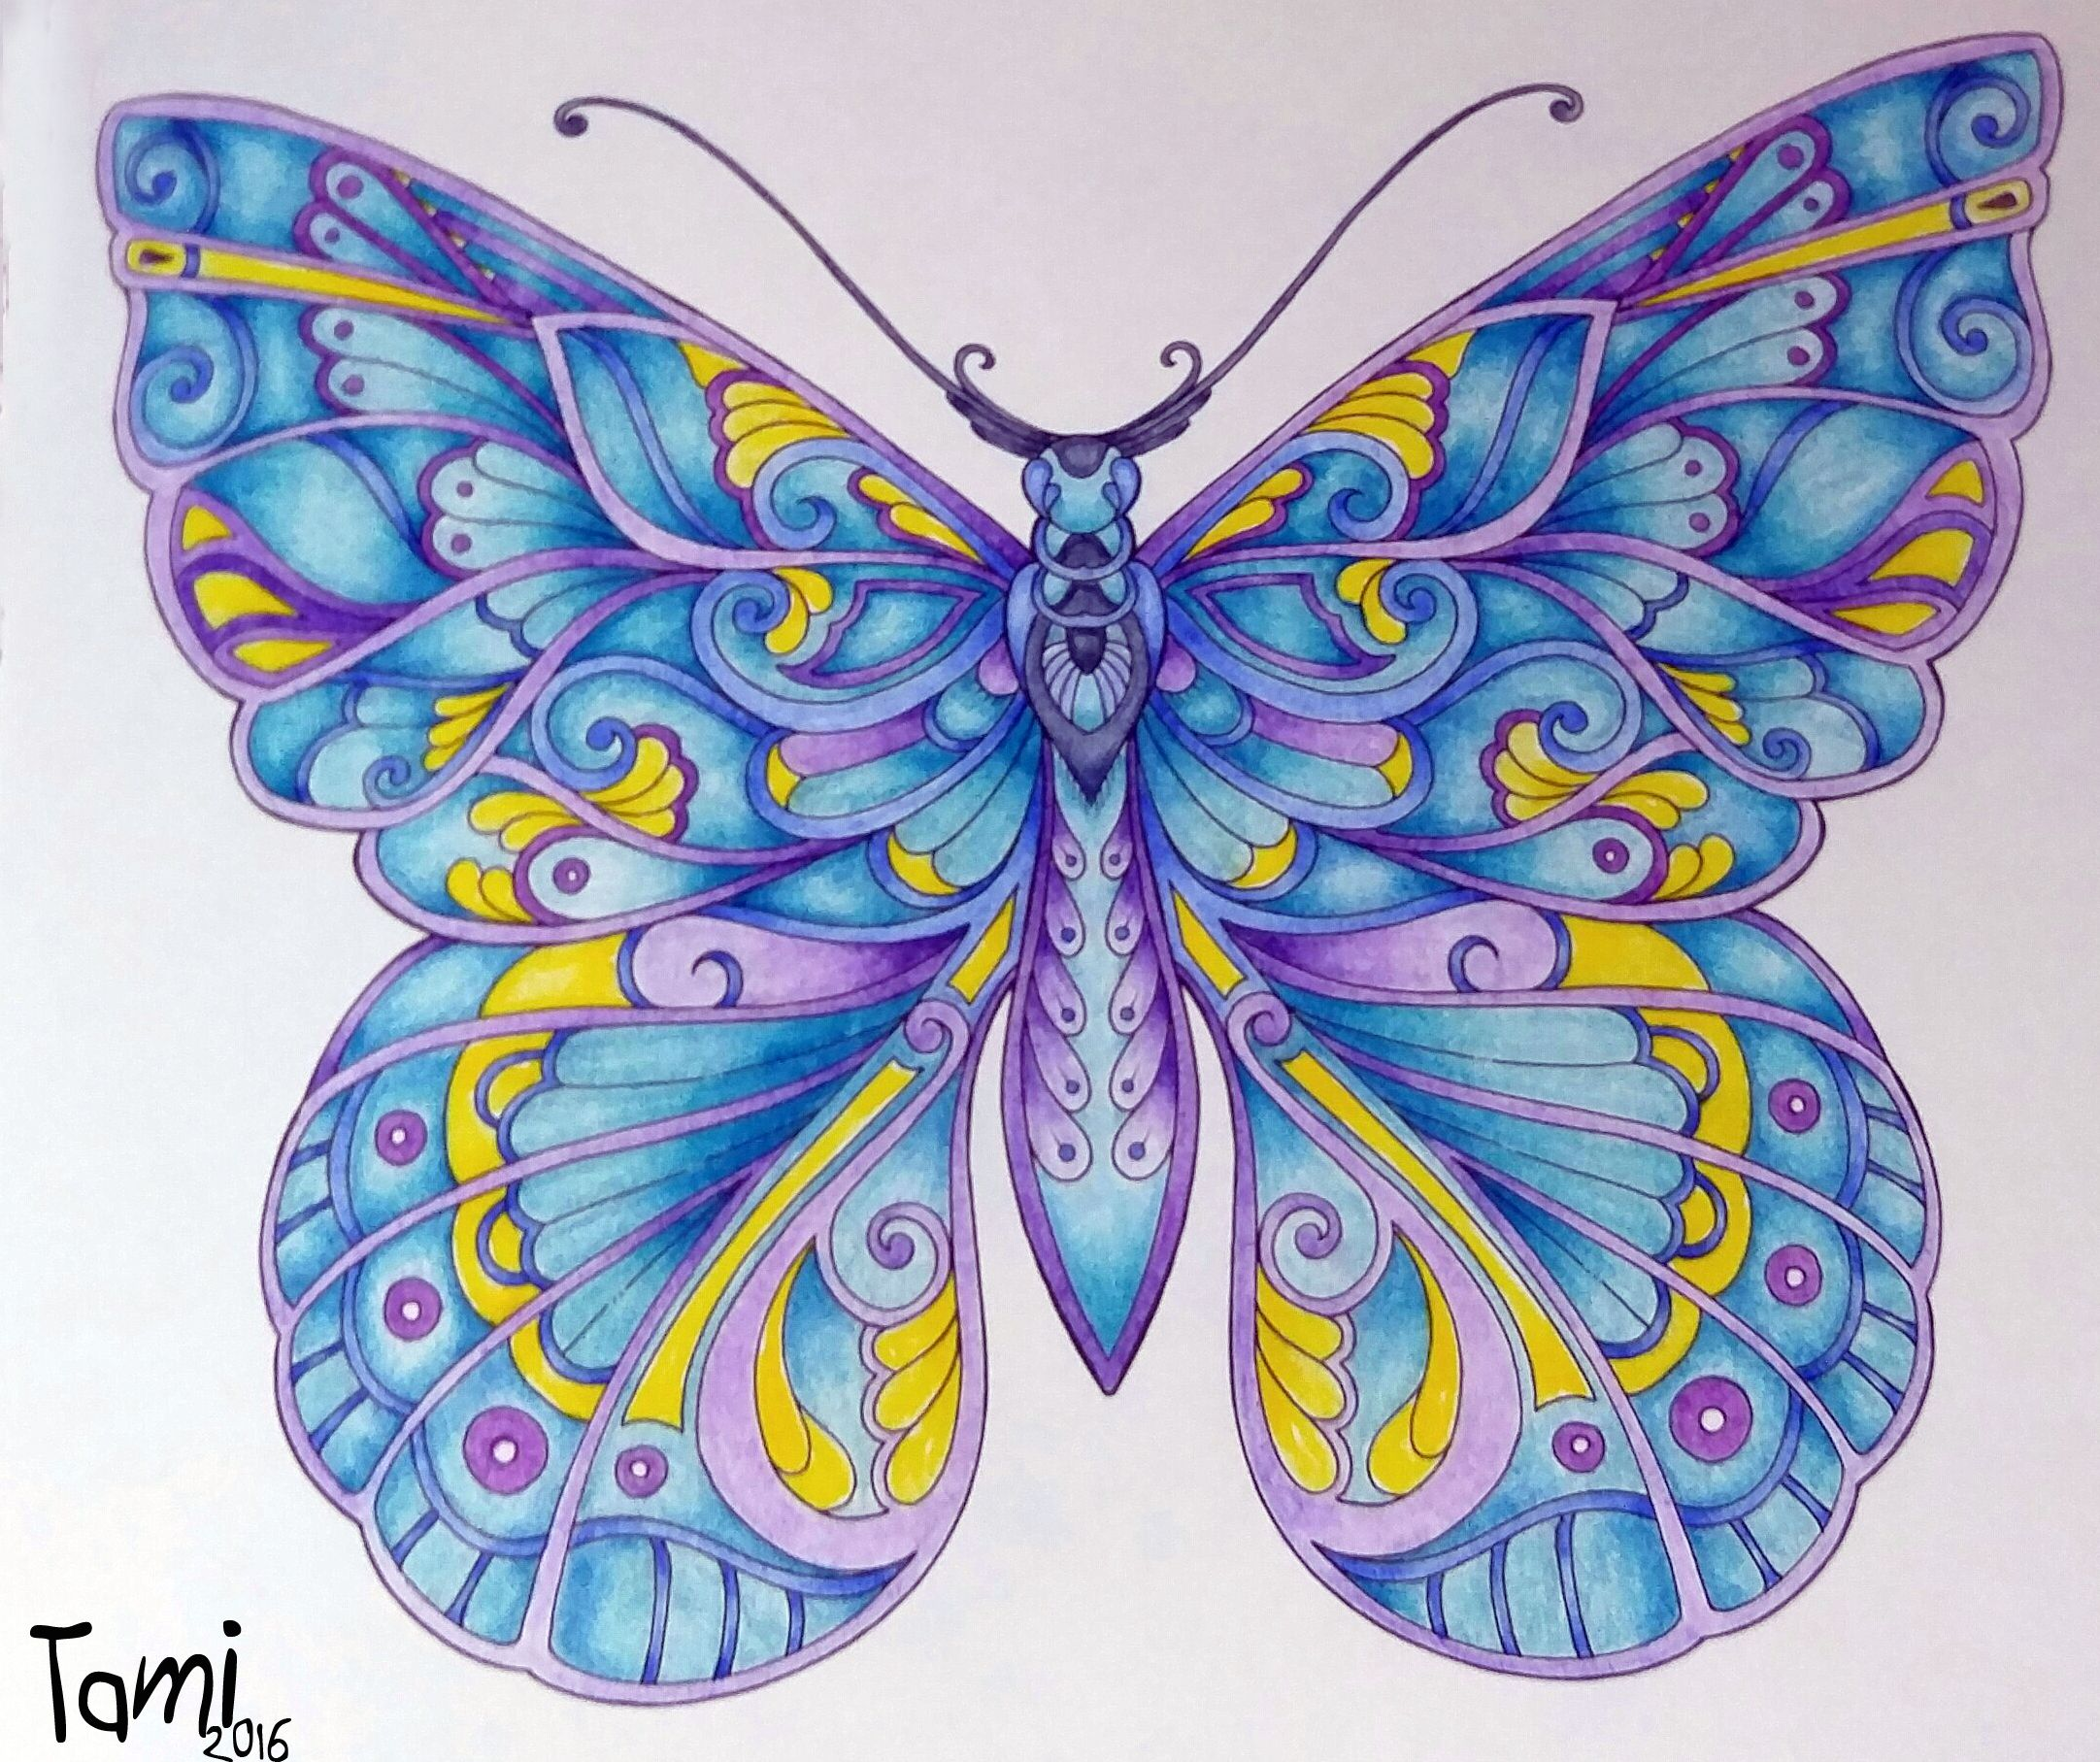 Done With Polychromos Pencils From Magical Jungle Johanna Basford Joanna Basford Coloring Johanna Basford Coloring Coloring Books [ 1815 x 2163 Pixel ]